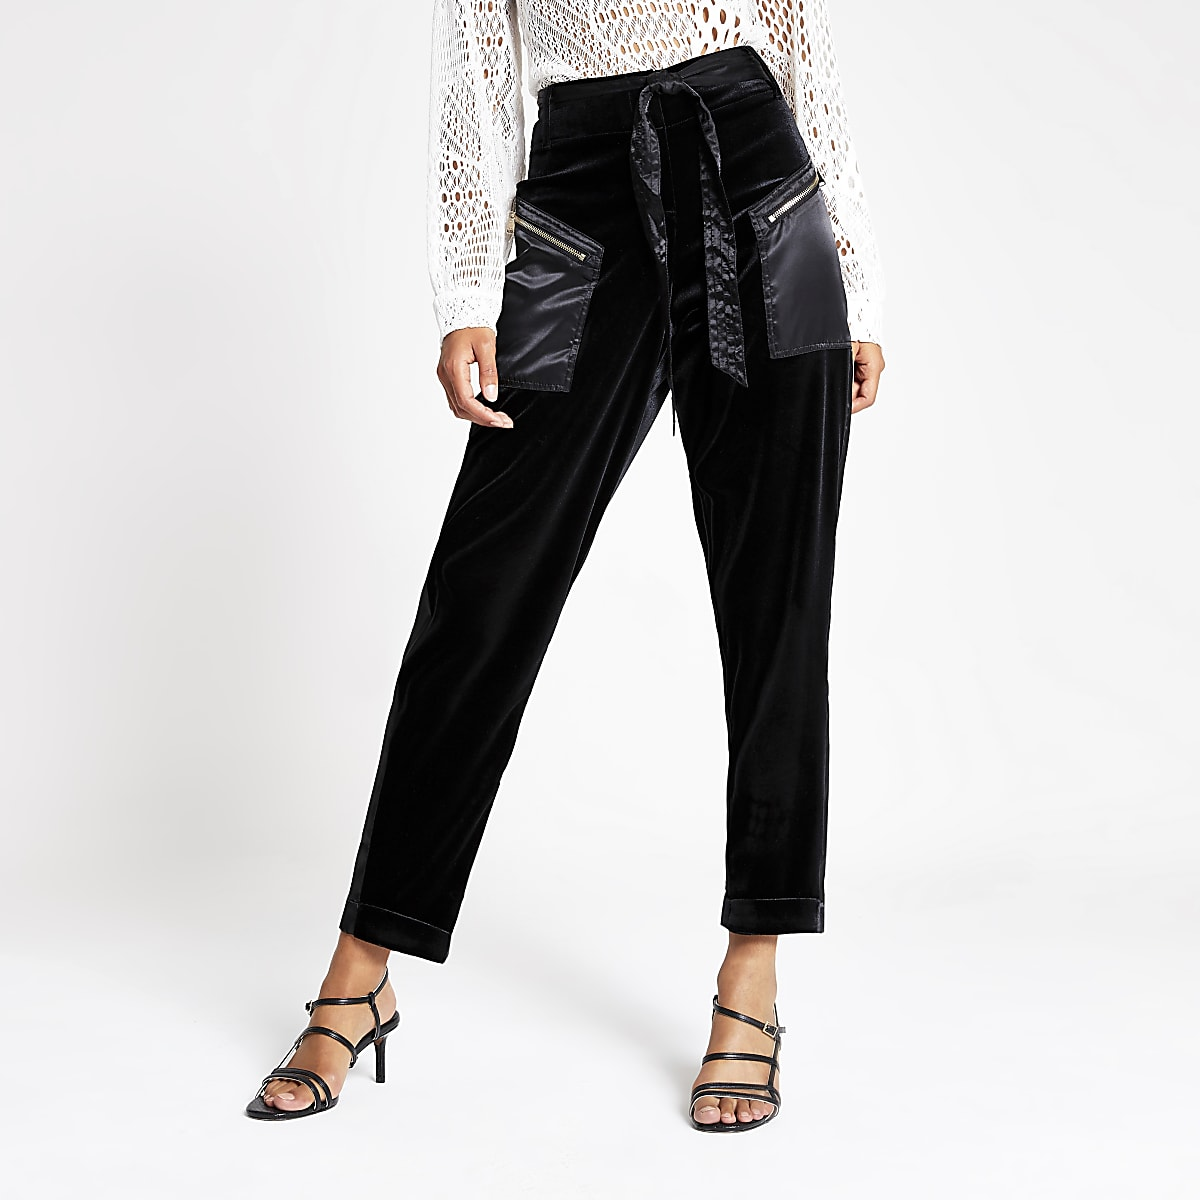 Black high waisted velvet trousers